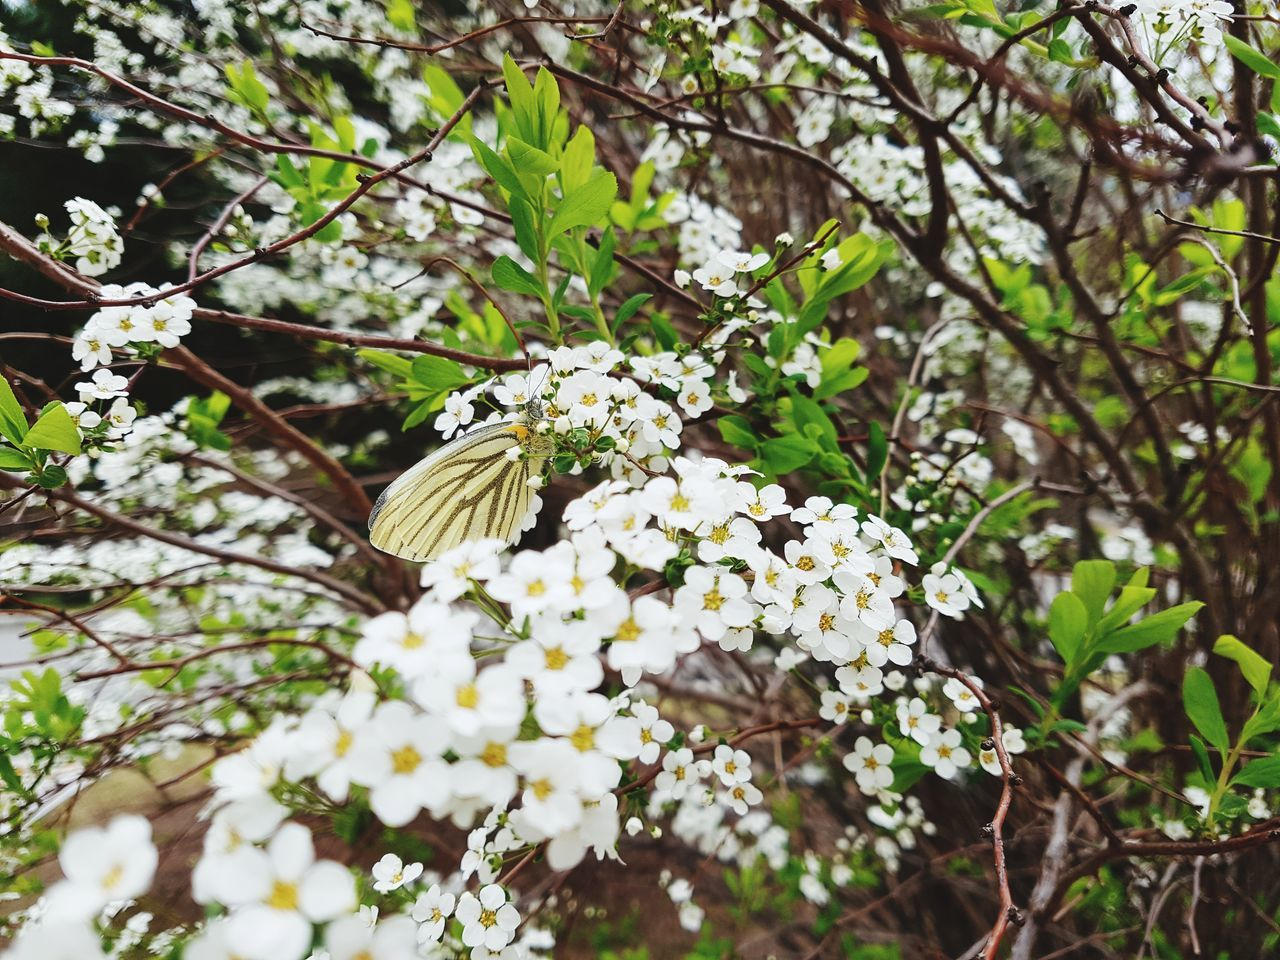 flower, fragility, growth, beauty in nature, nature, freshness, petal, white color, flower head, day, blooming, outdoors, blossom, no people, plant, one animal, springtime, close-up, pollination, branch, animal themes, tree